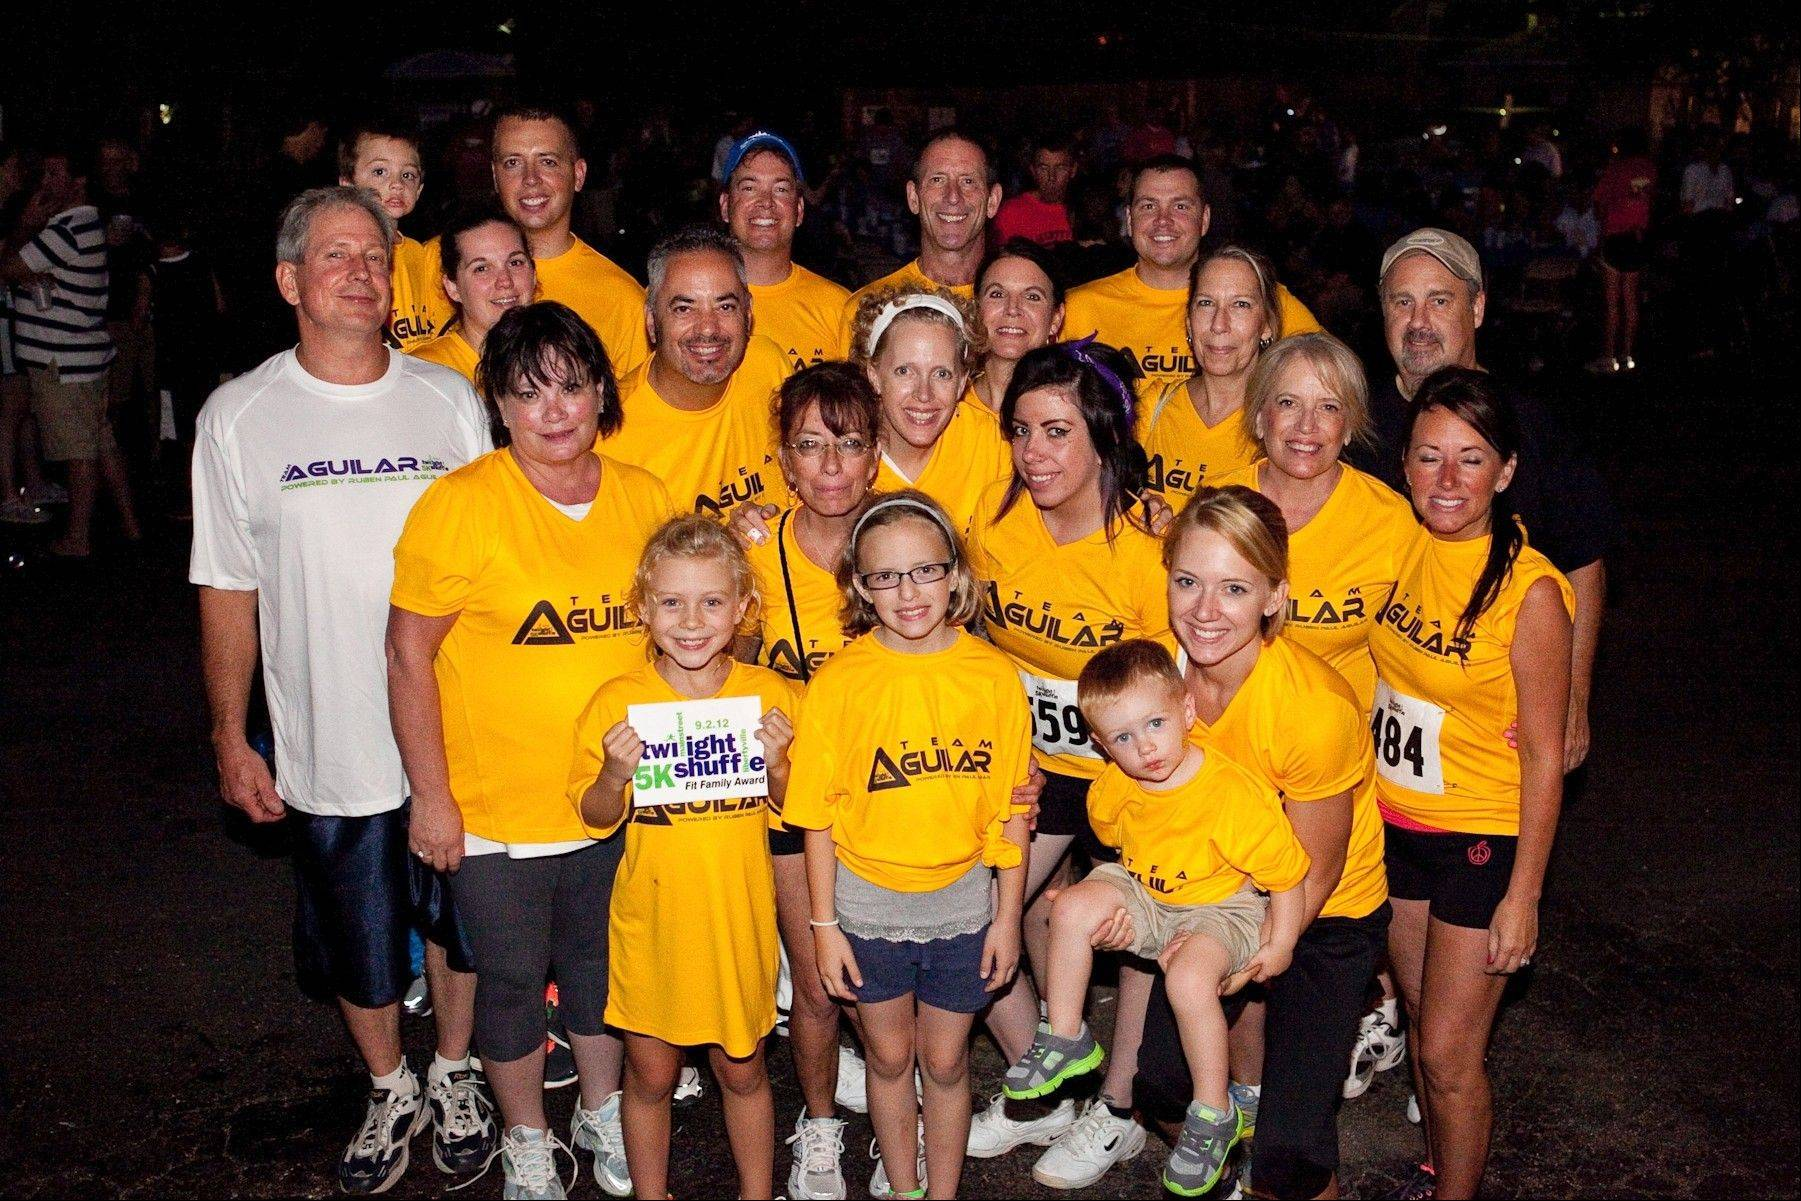 2012 Fit Family Award winners the Aguilar family at last year's MainStreet Libertyville Twilight Shuffle 5K.